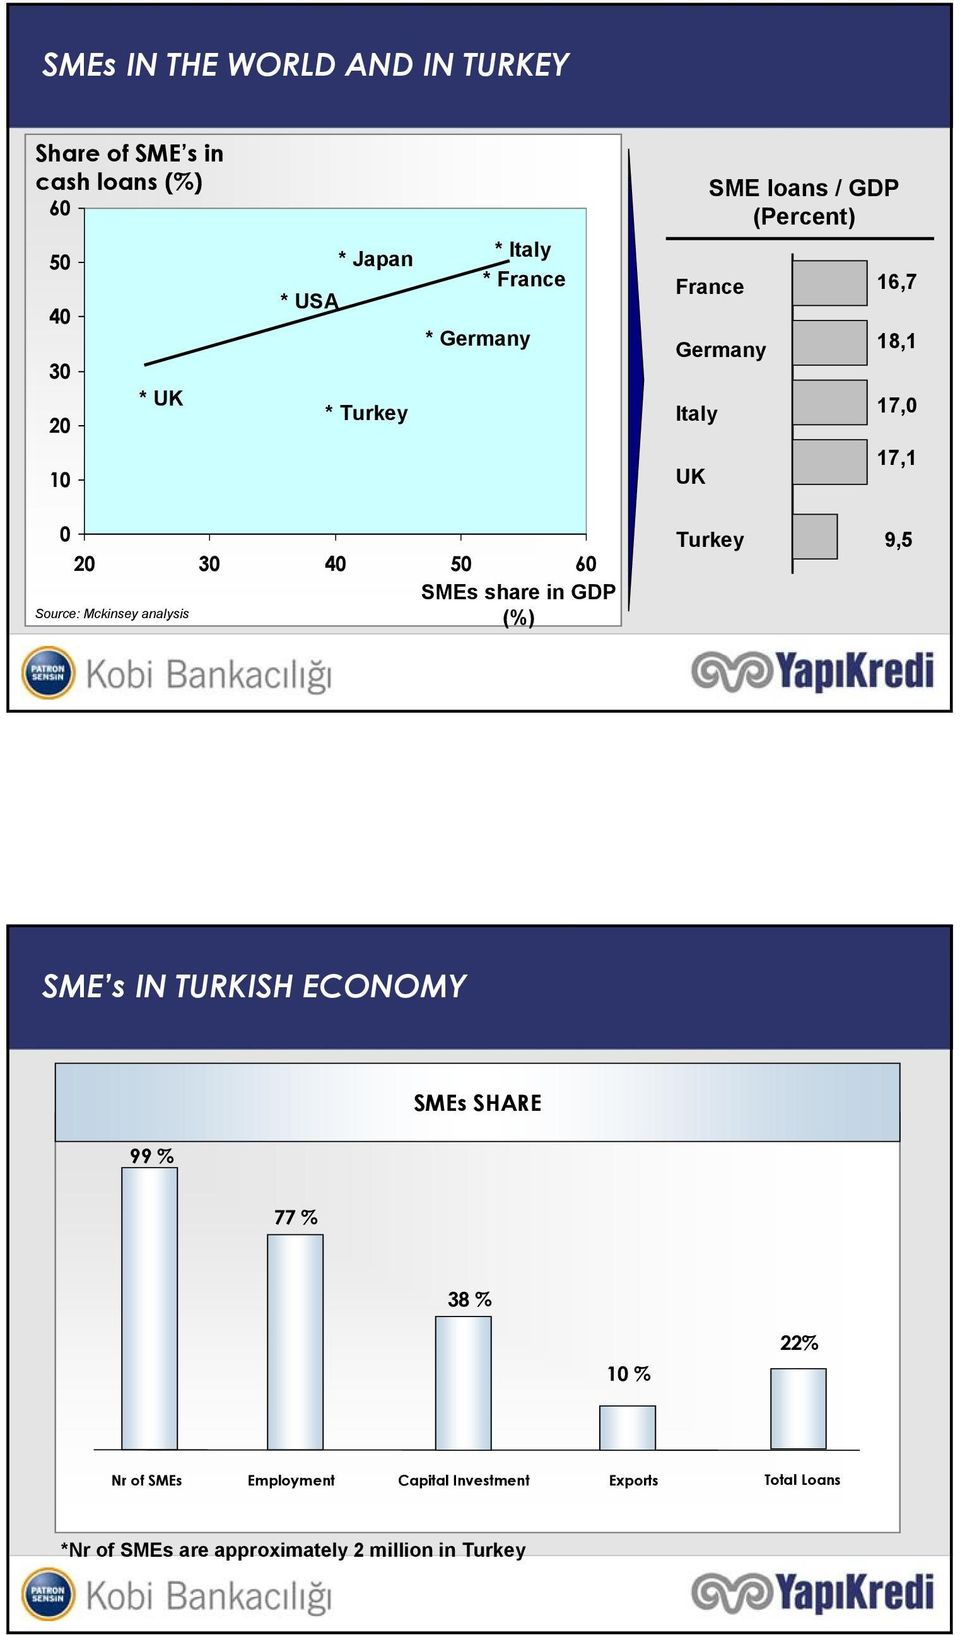 SMEs share in GDP (%) Source: Mckinsey analysis Turkey 9,5 SME s IN TURKISH ECONOMY SMEs SHARE 99 % 77 % 38 % 10